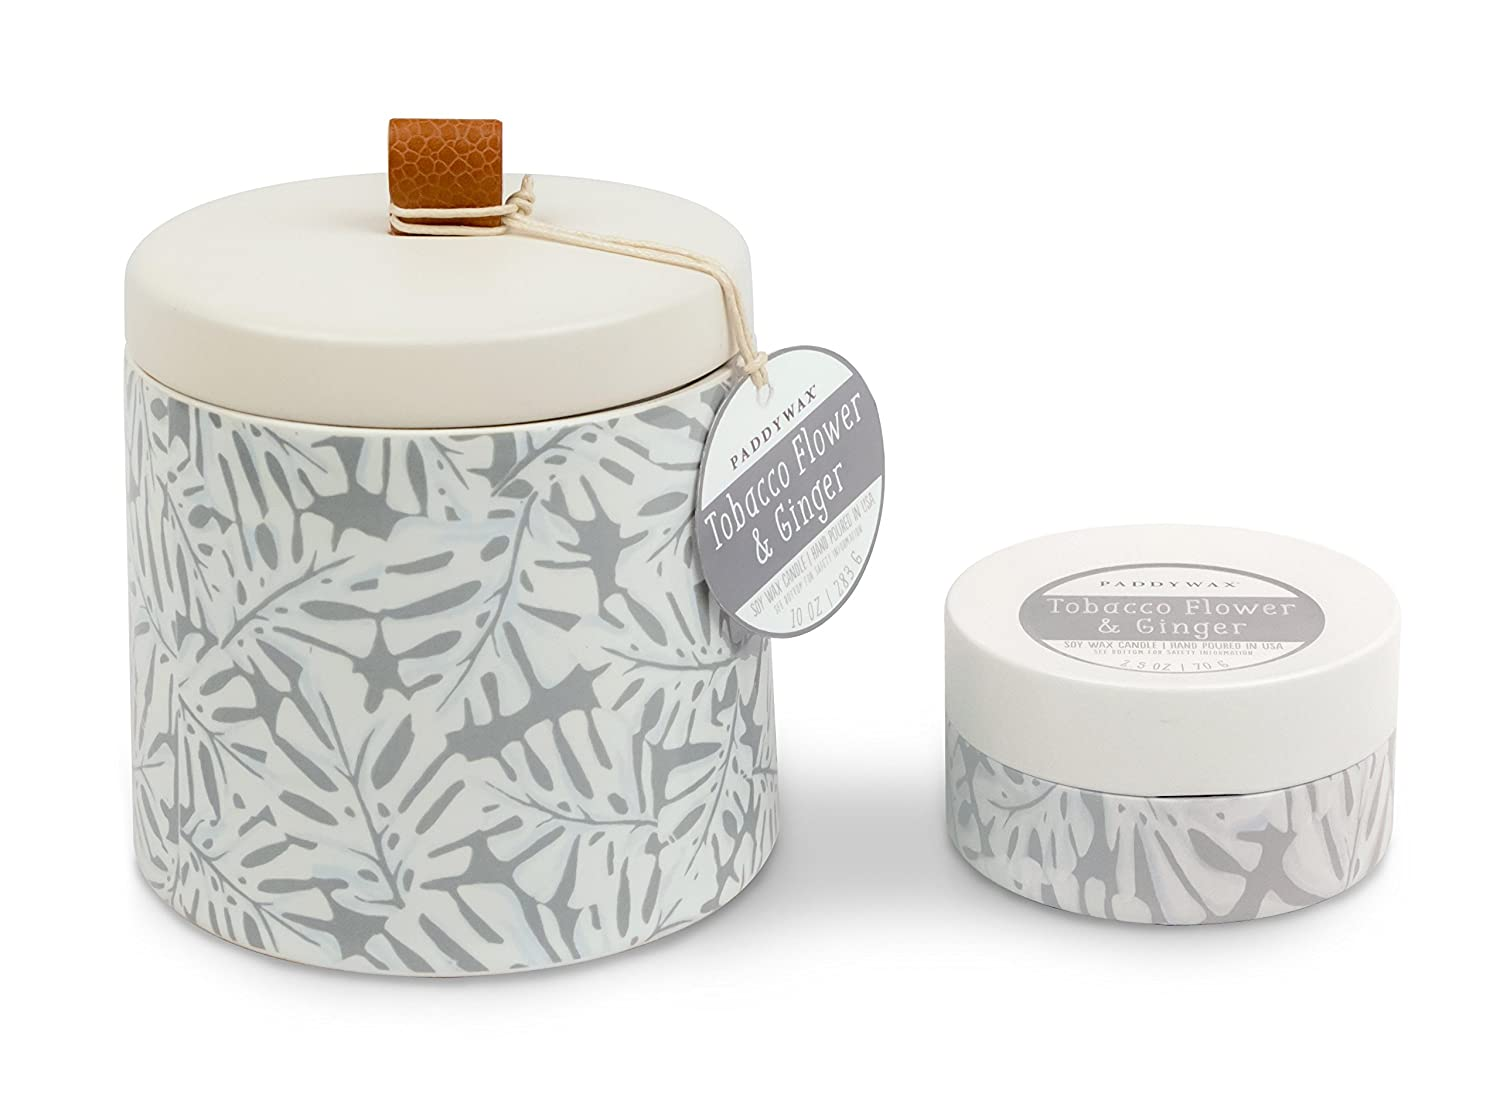 Amazon.com: Paddywax Botany Collection Scented Soy Wax Candle, 10 ...